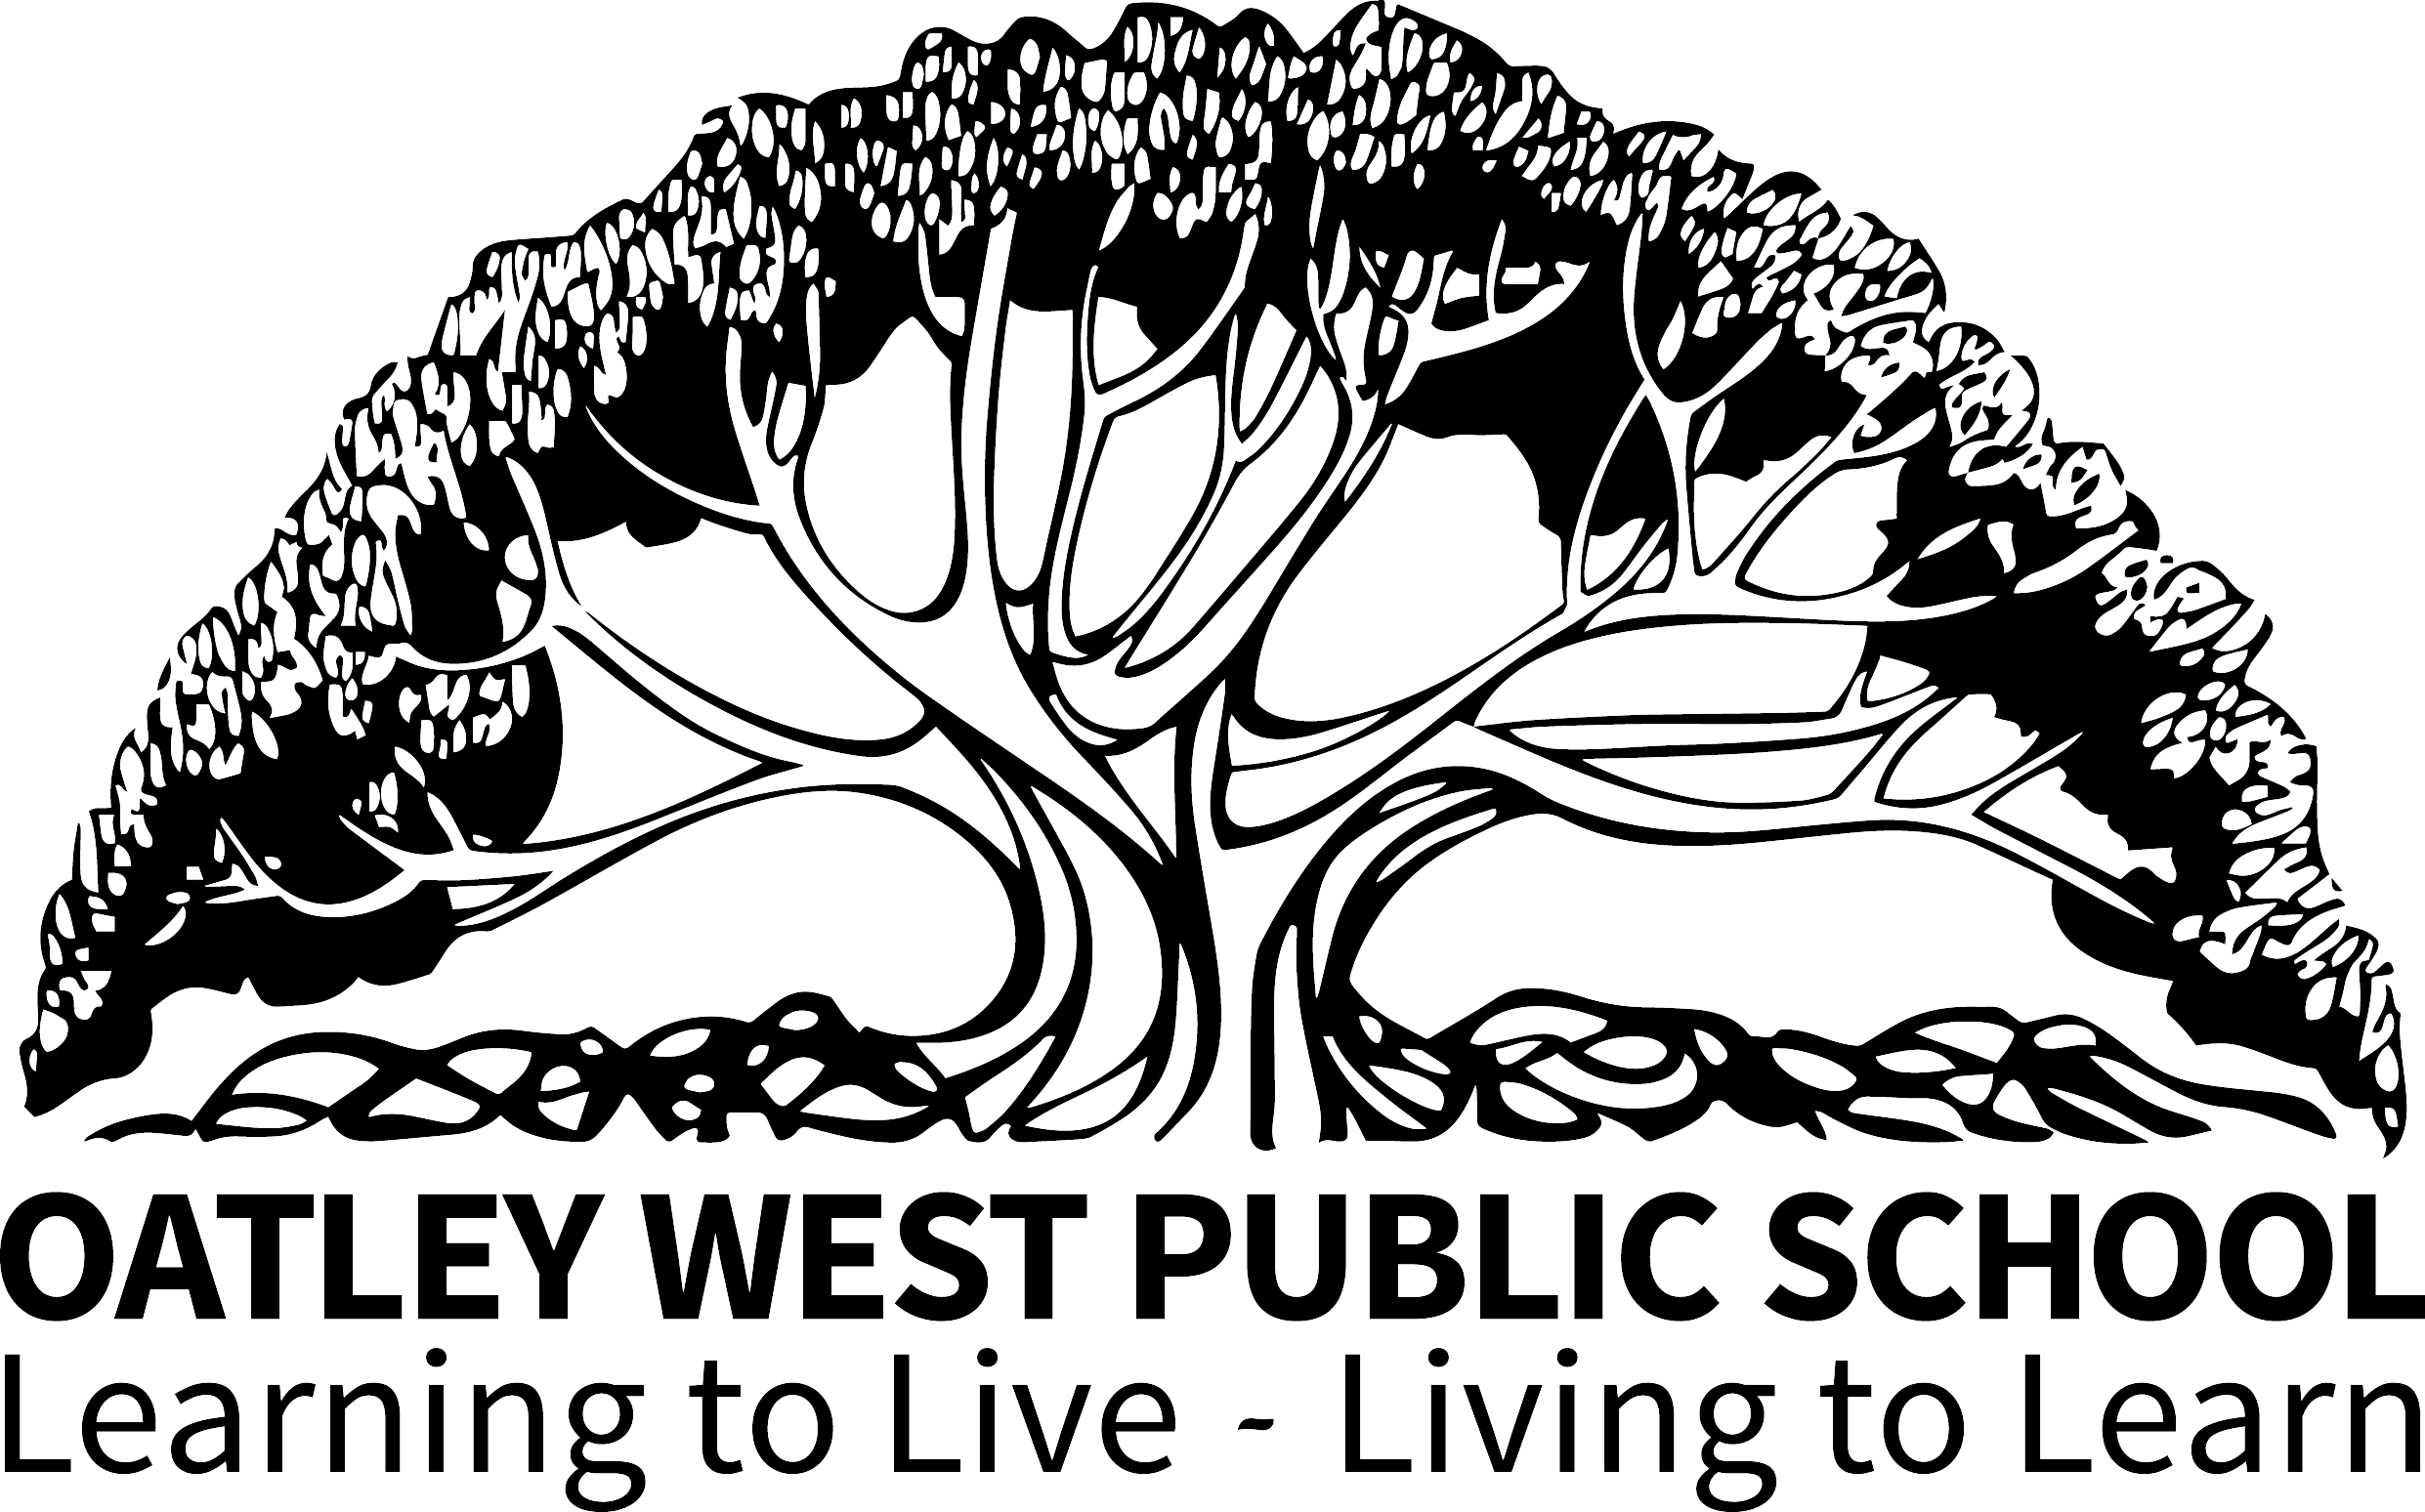 Oatley West Public School logo